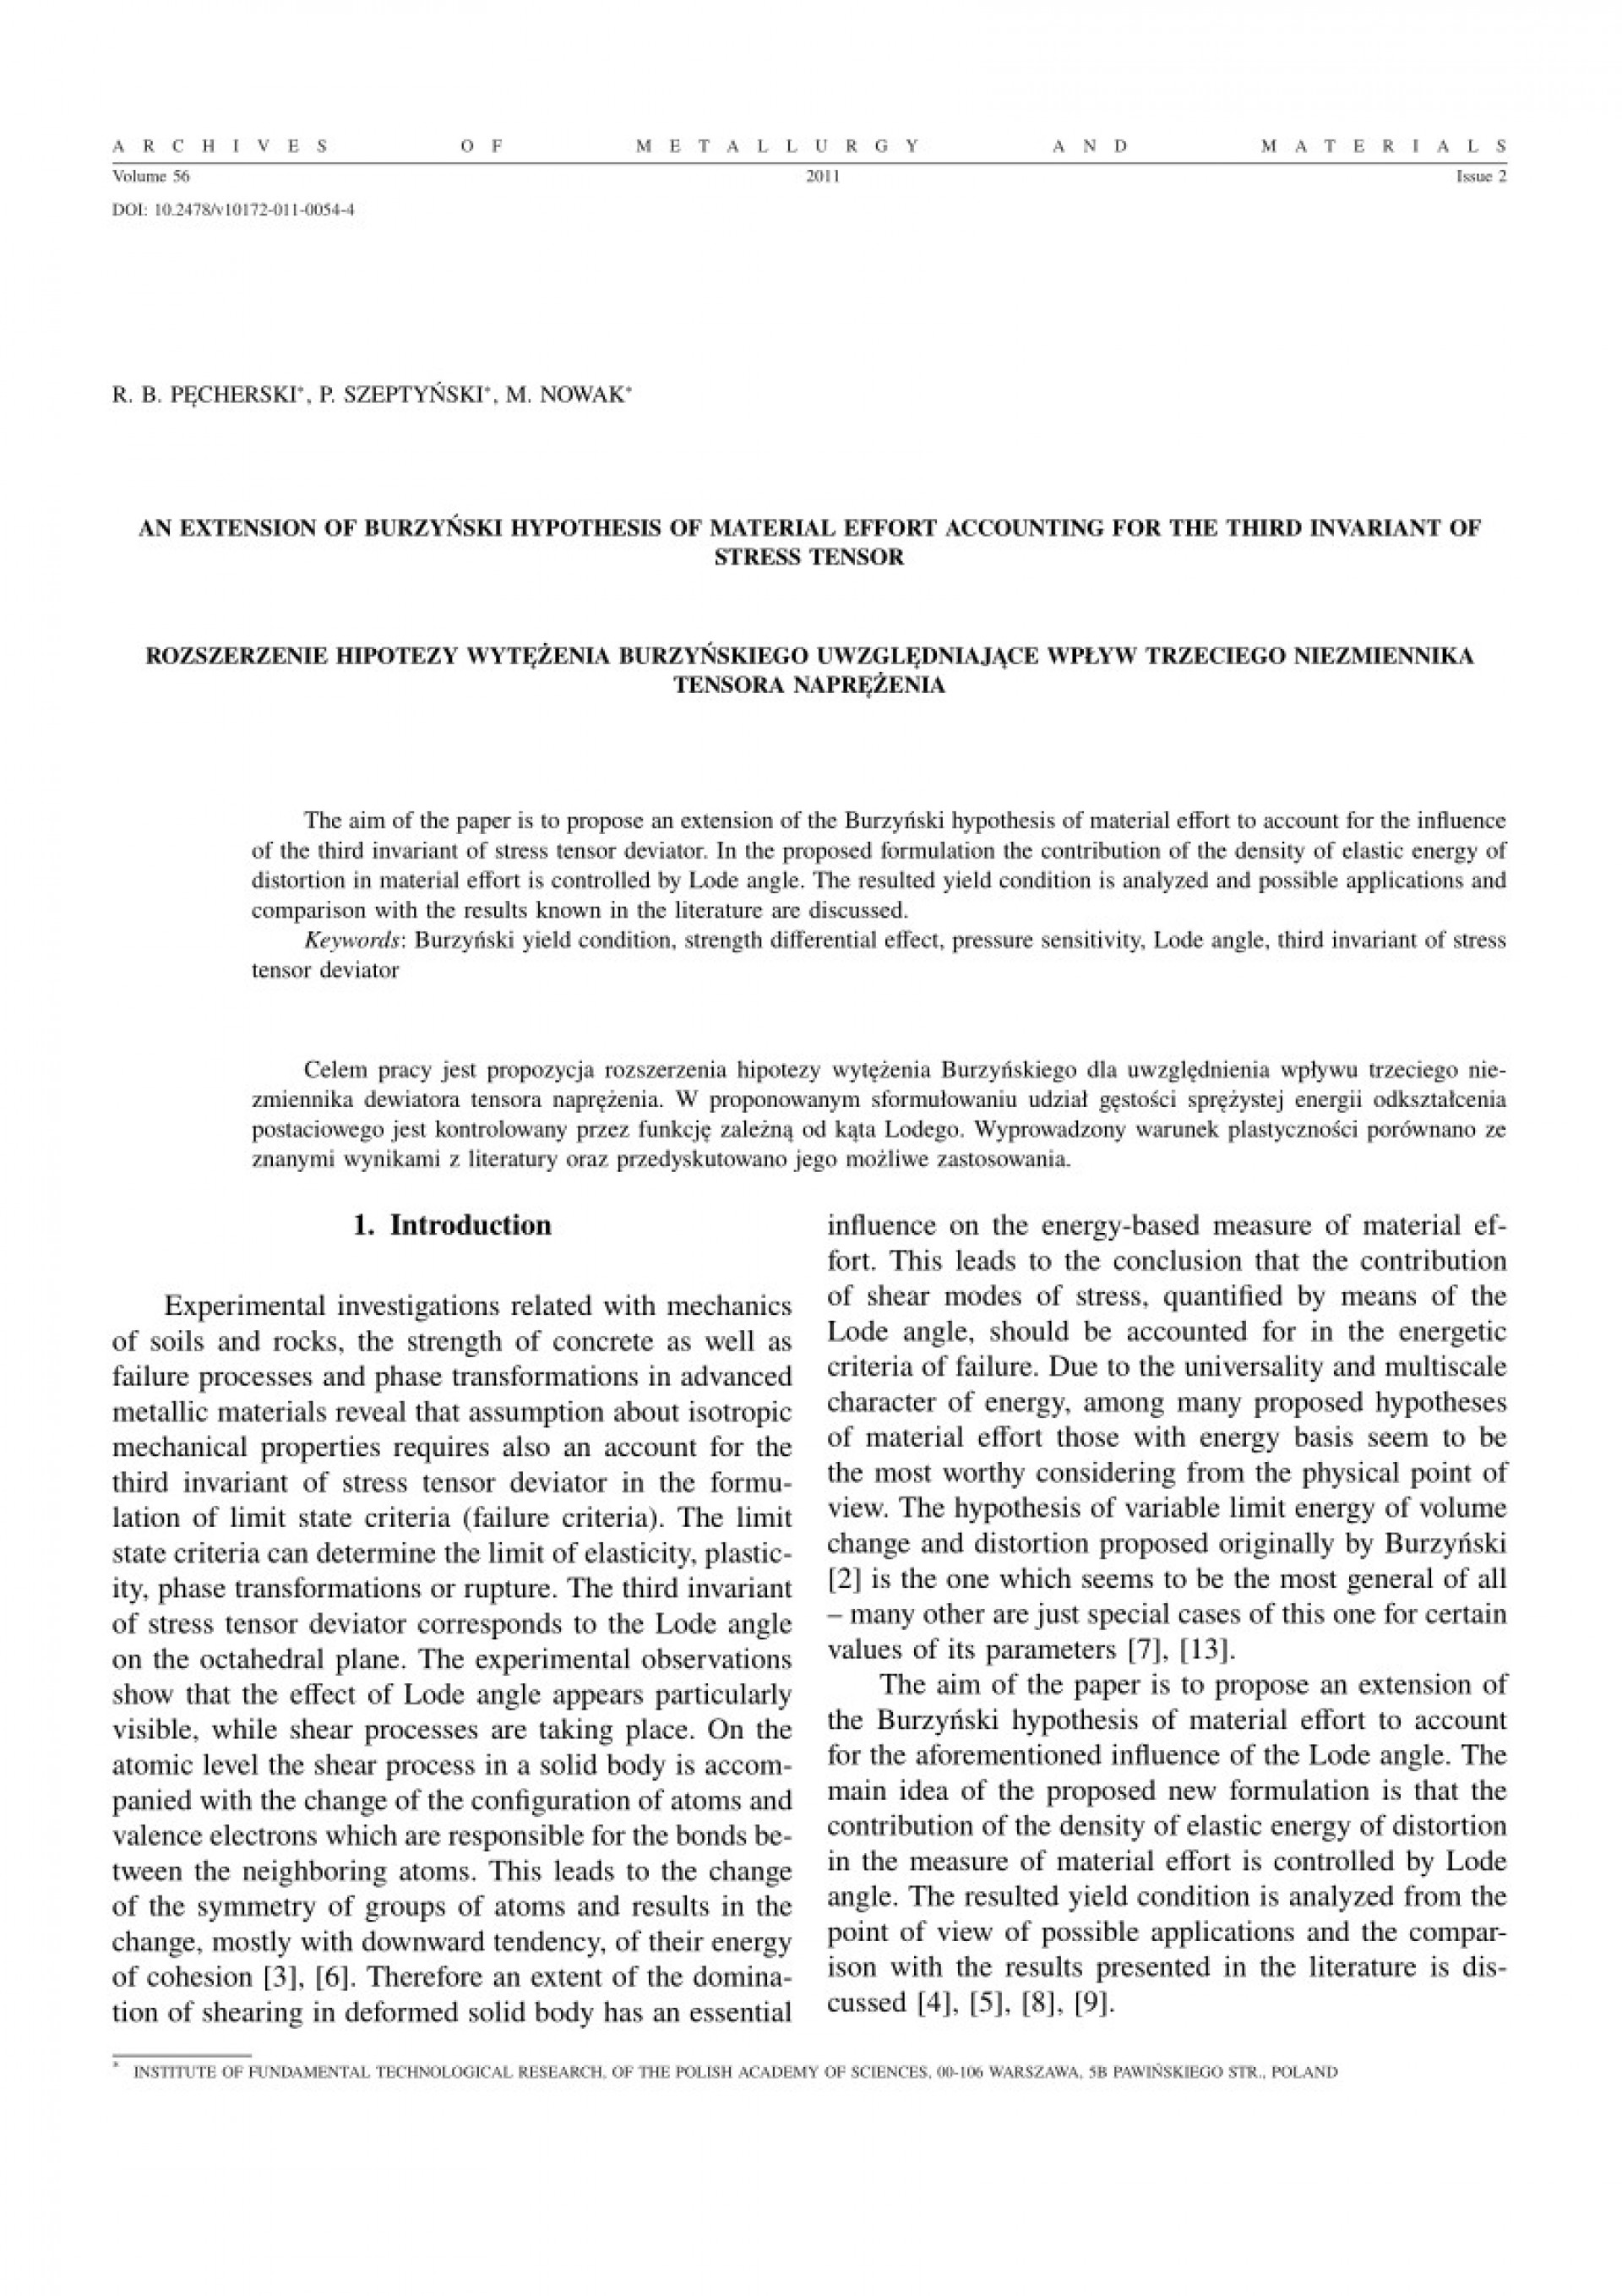 007 Hypothesis In Research Paper Pdf Fresh An Extension Of Burzyac284ski Material Sensational Testing 1920